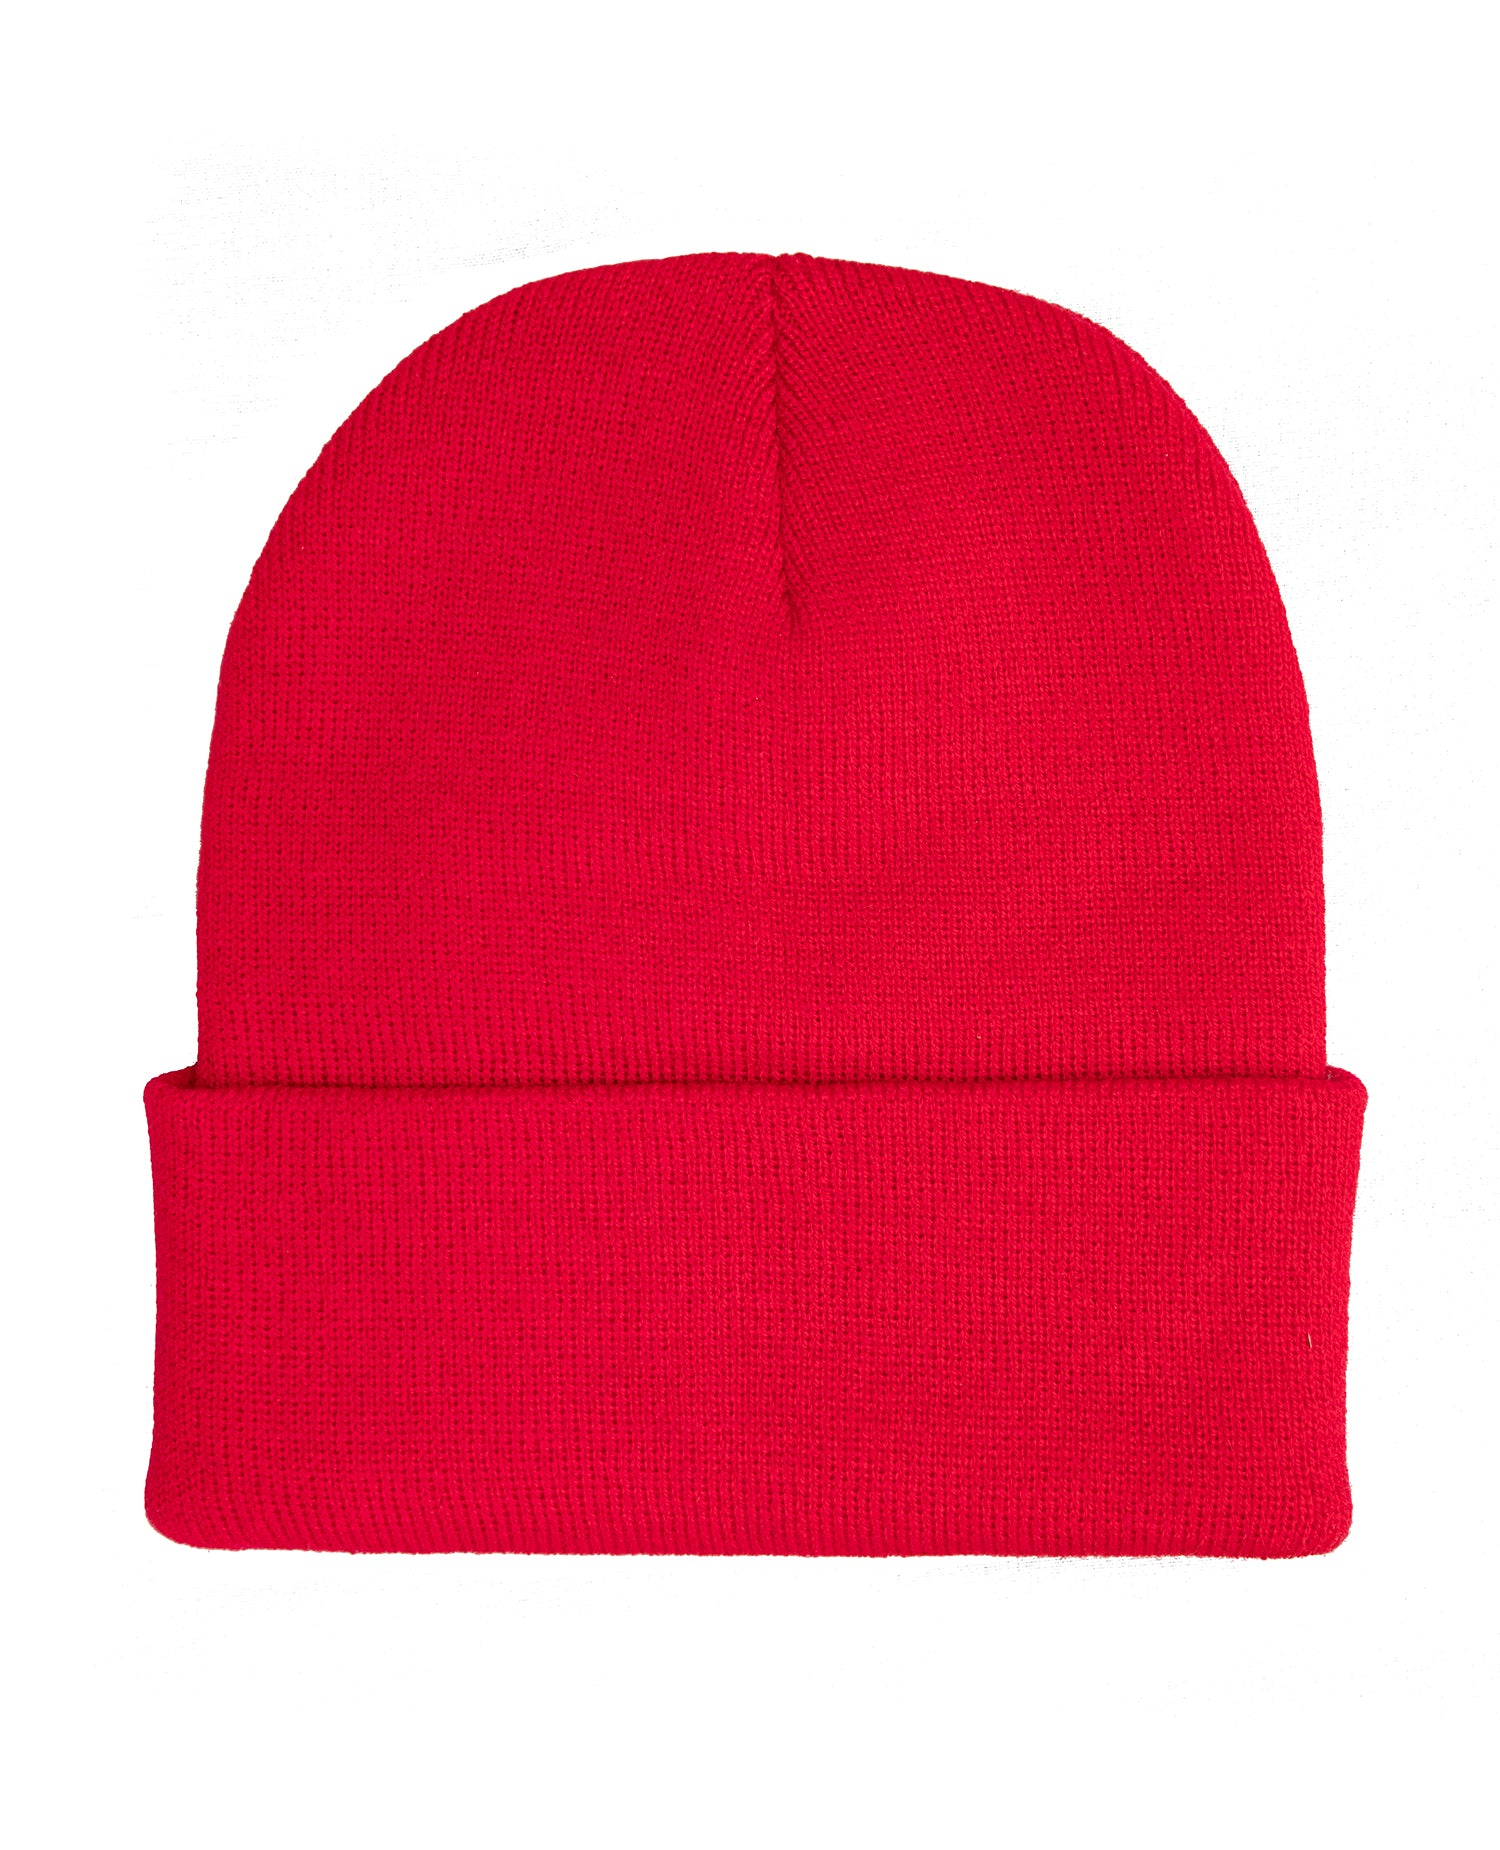 BOYS LIE RED BEANIE